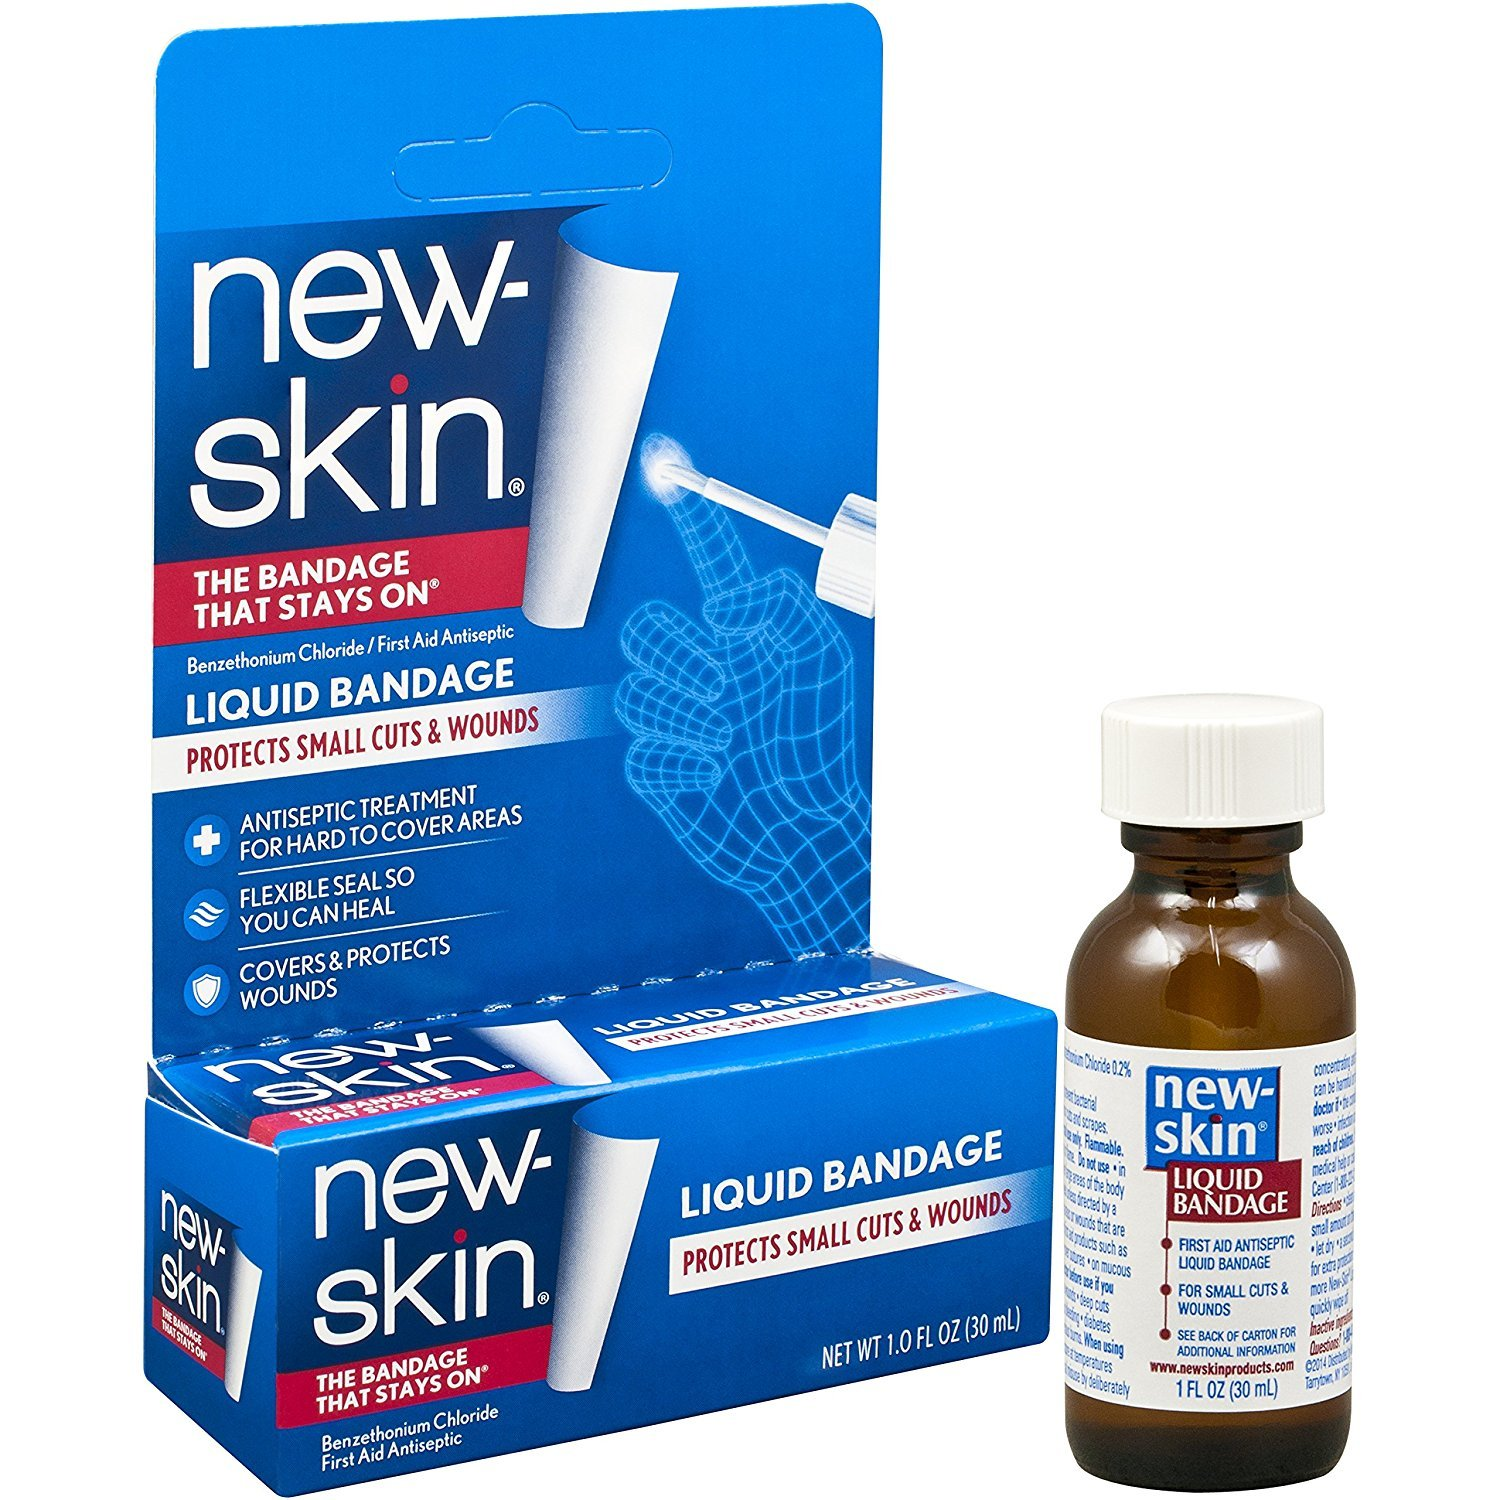 New-Skin Liquid Bandage 1.0 FL OZ, Liquid Bandage for Hard-to-Cover Cuts, Scrapes, Wounds, Calluses, and Dry, Cracked Skin (.4 Pack(1 FL OZ)) by New-Skin